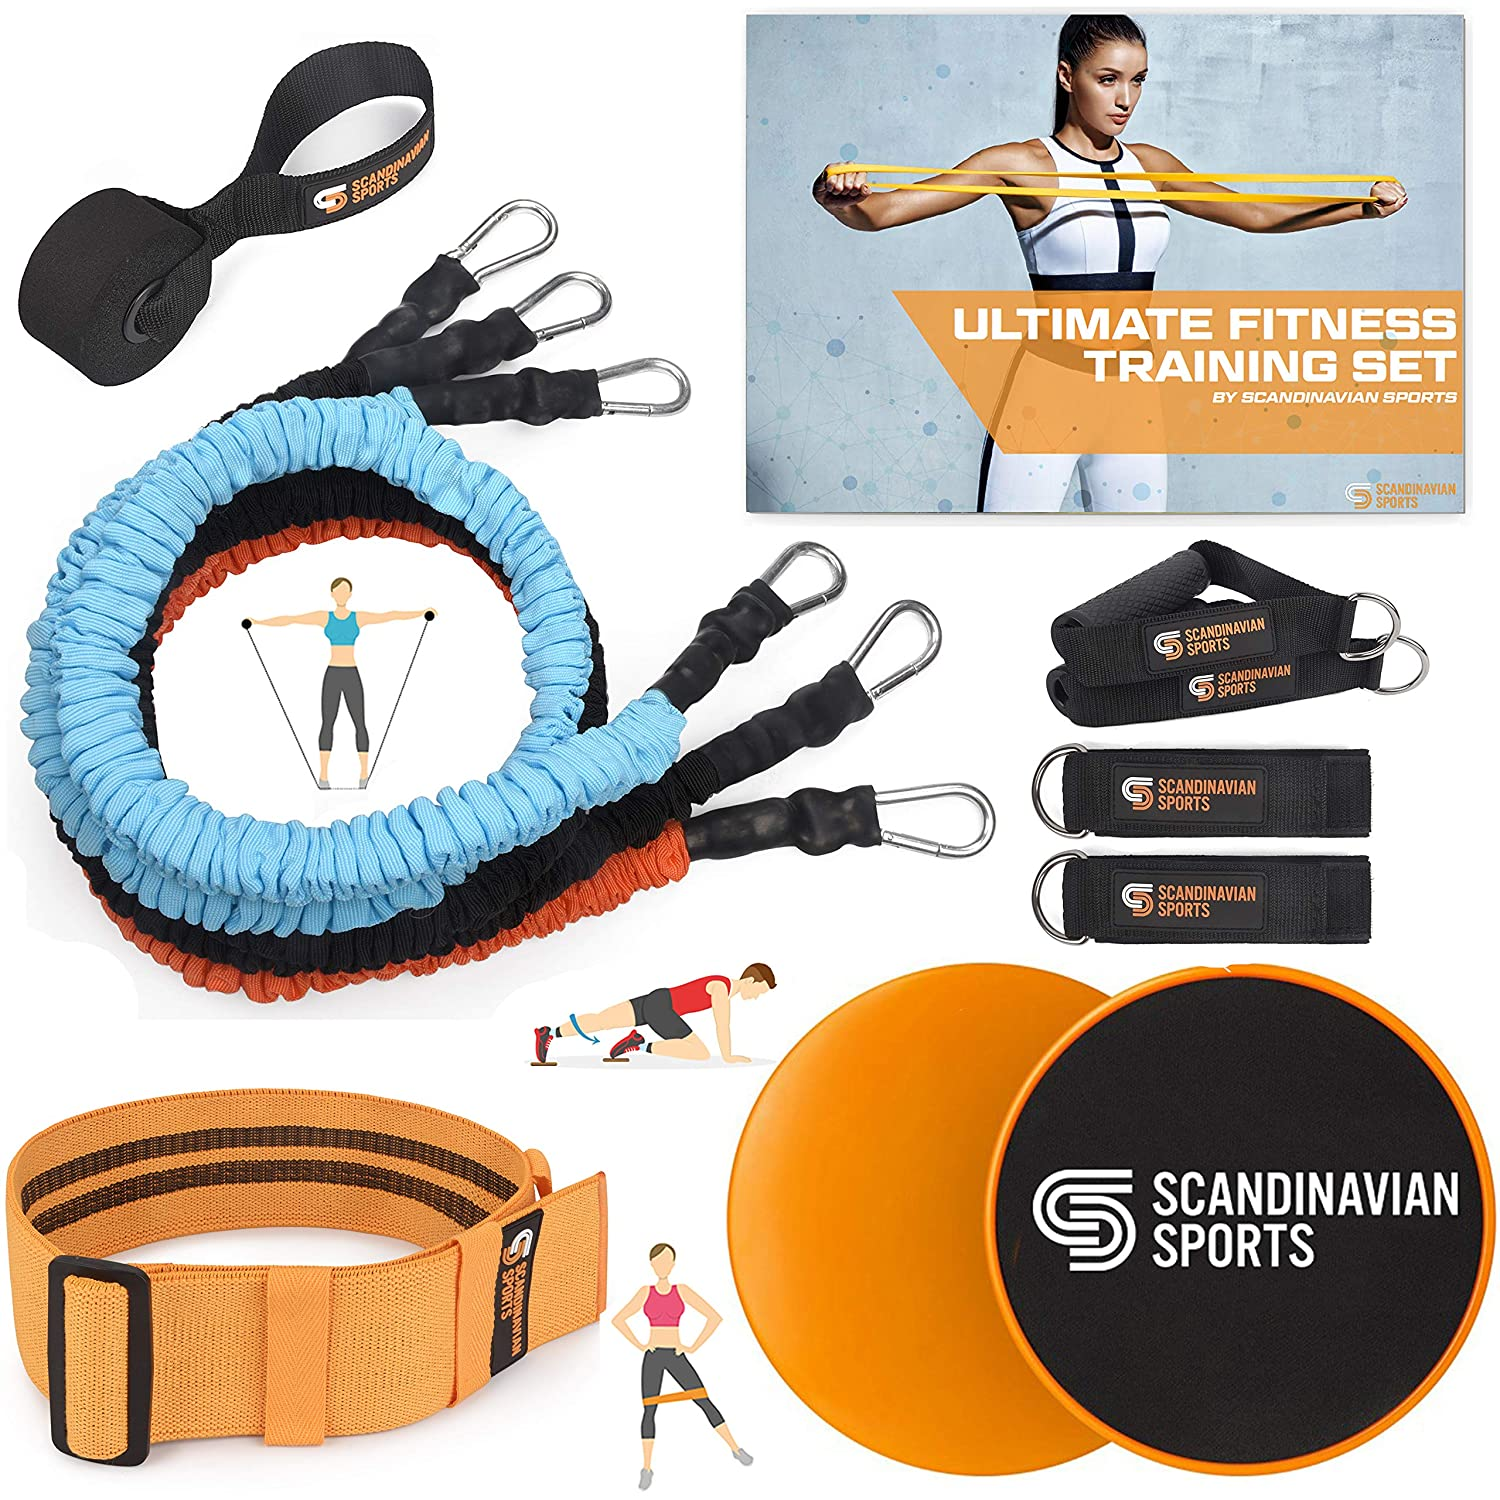 Scandinavian Sports Exercise Bands Set Fabric Resistance Tubes, Dual Sided Core Sliders, Adjustable Resistance Hip Band and Exercise Folder for Fitness Training and Full Body Workout